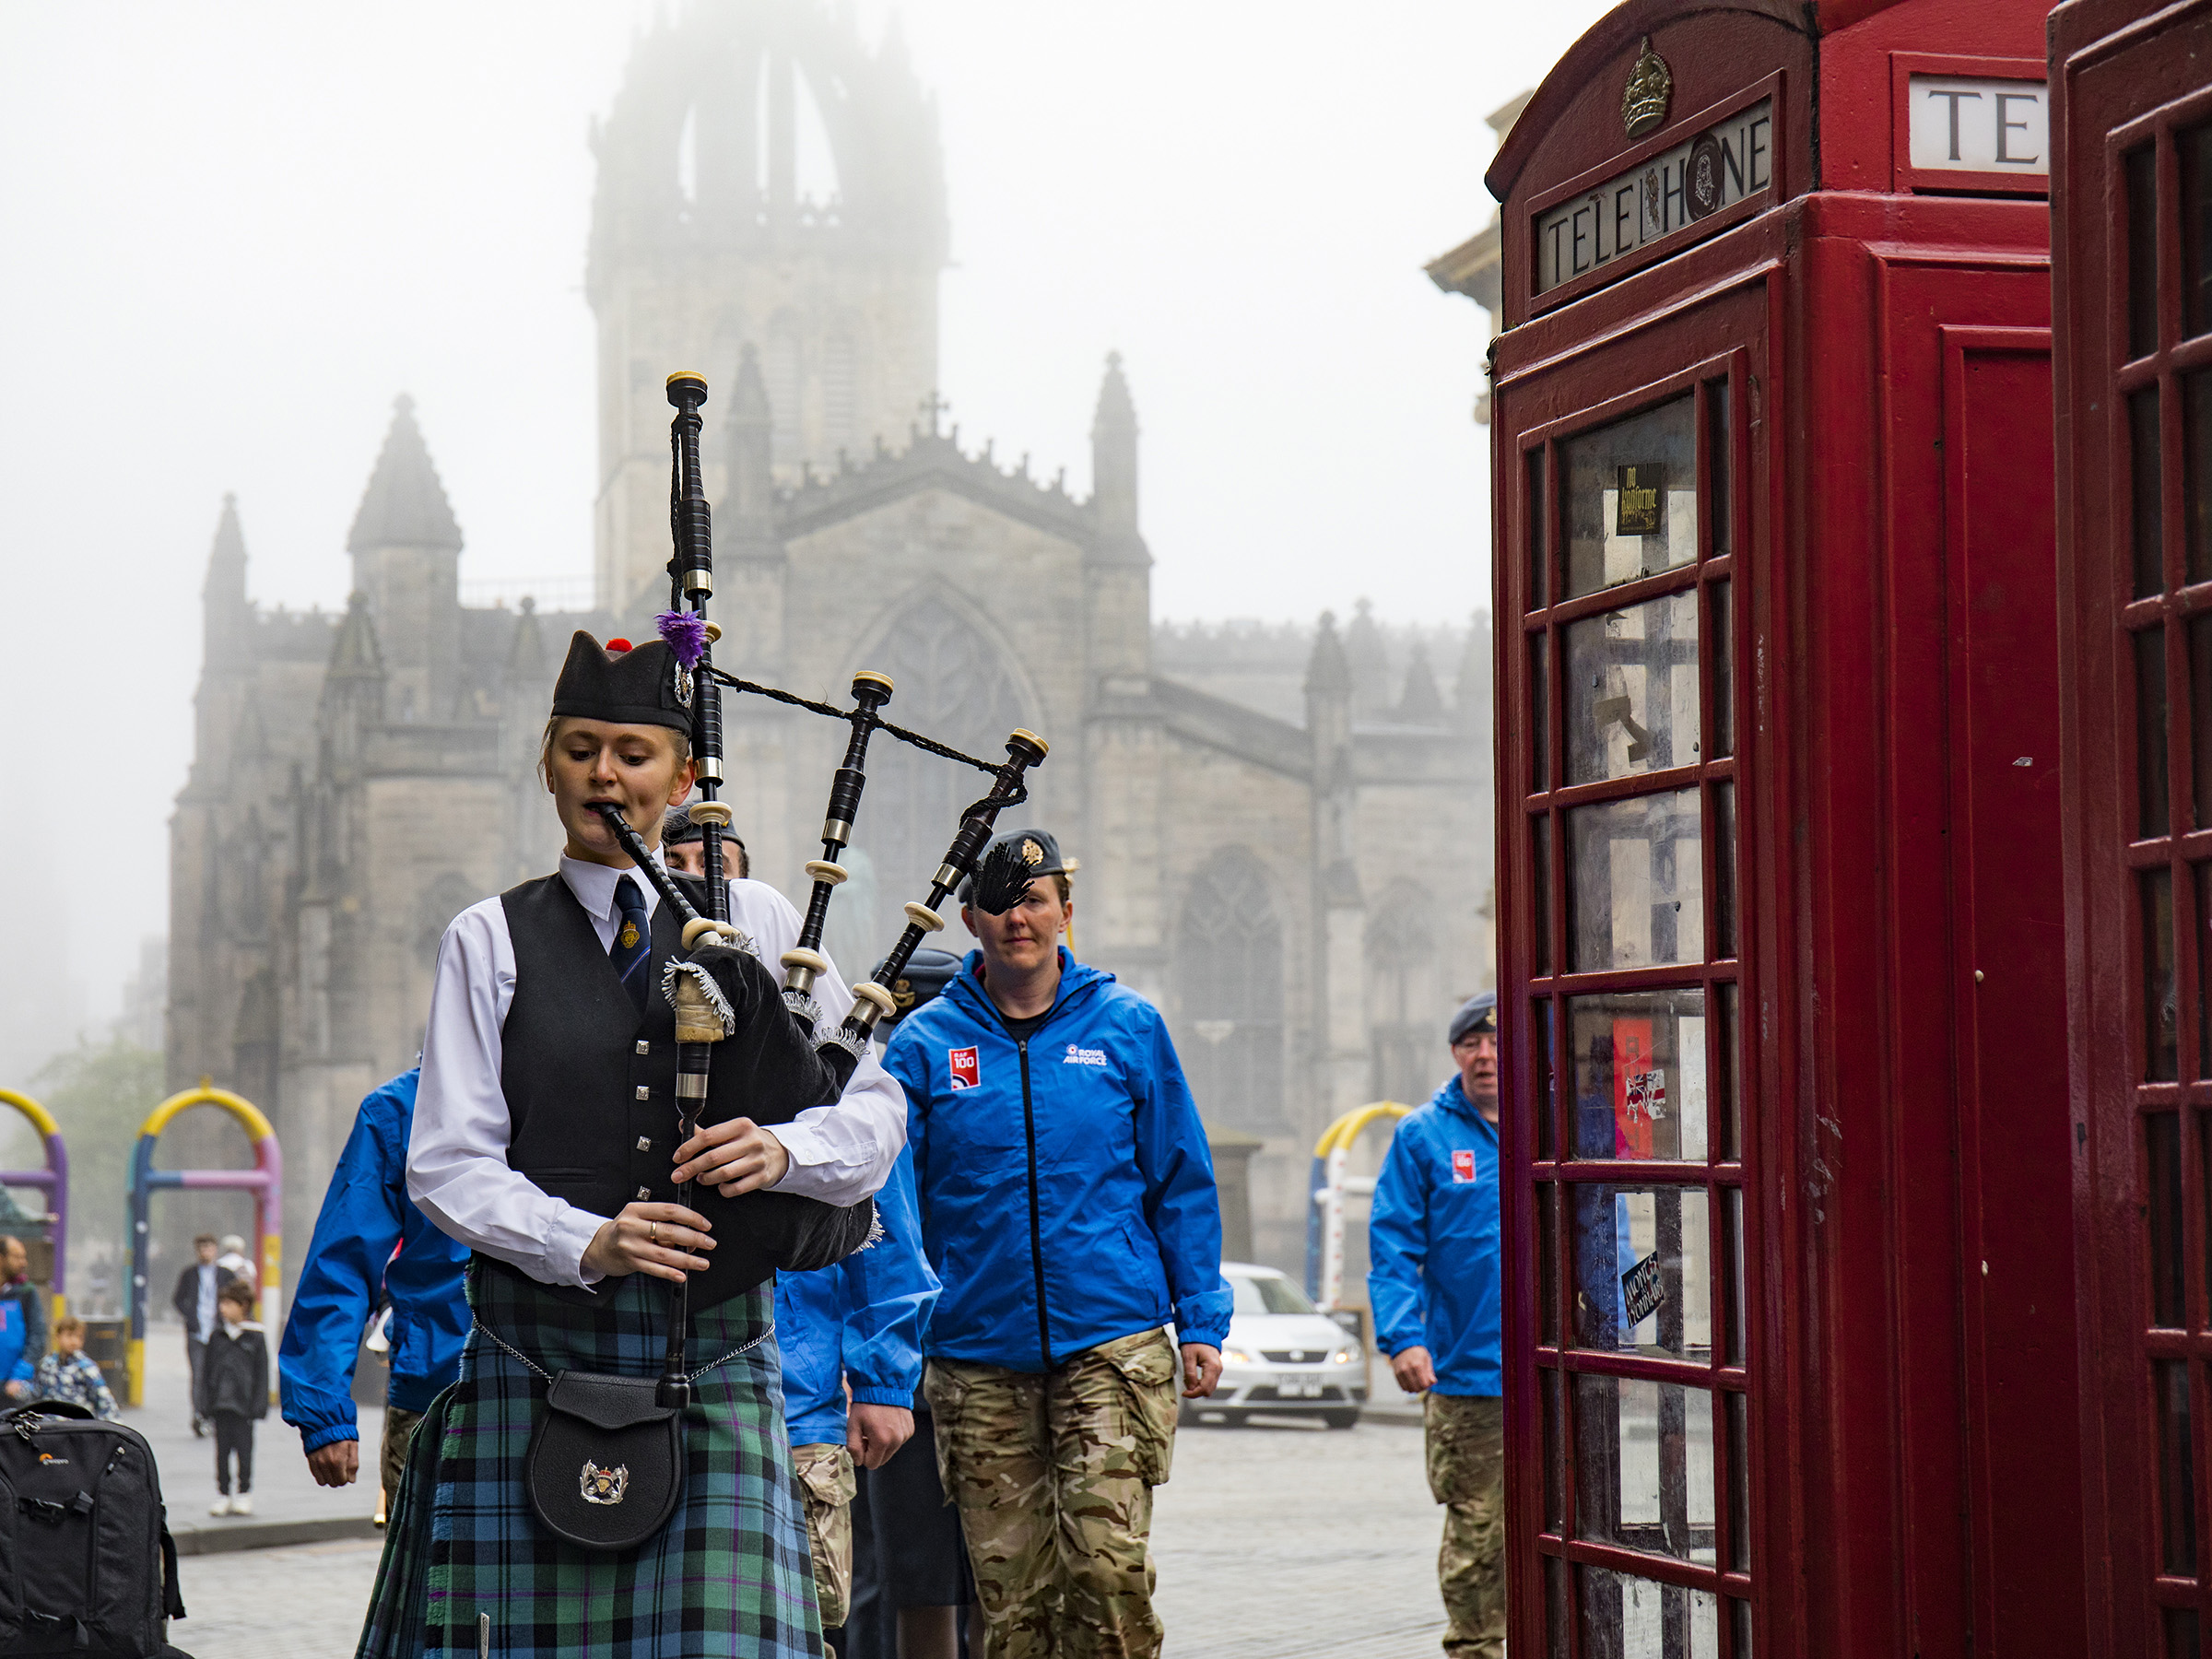 A Legion Scotland piper leads the procession up the Royal Mile. Crown copyright.